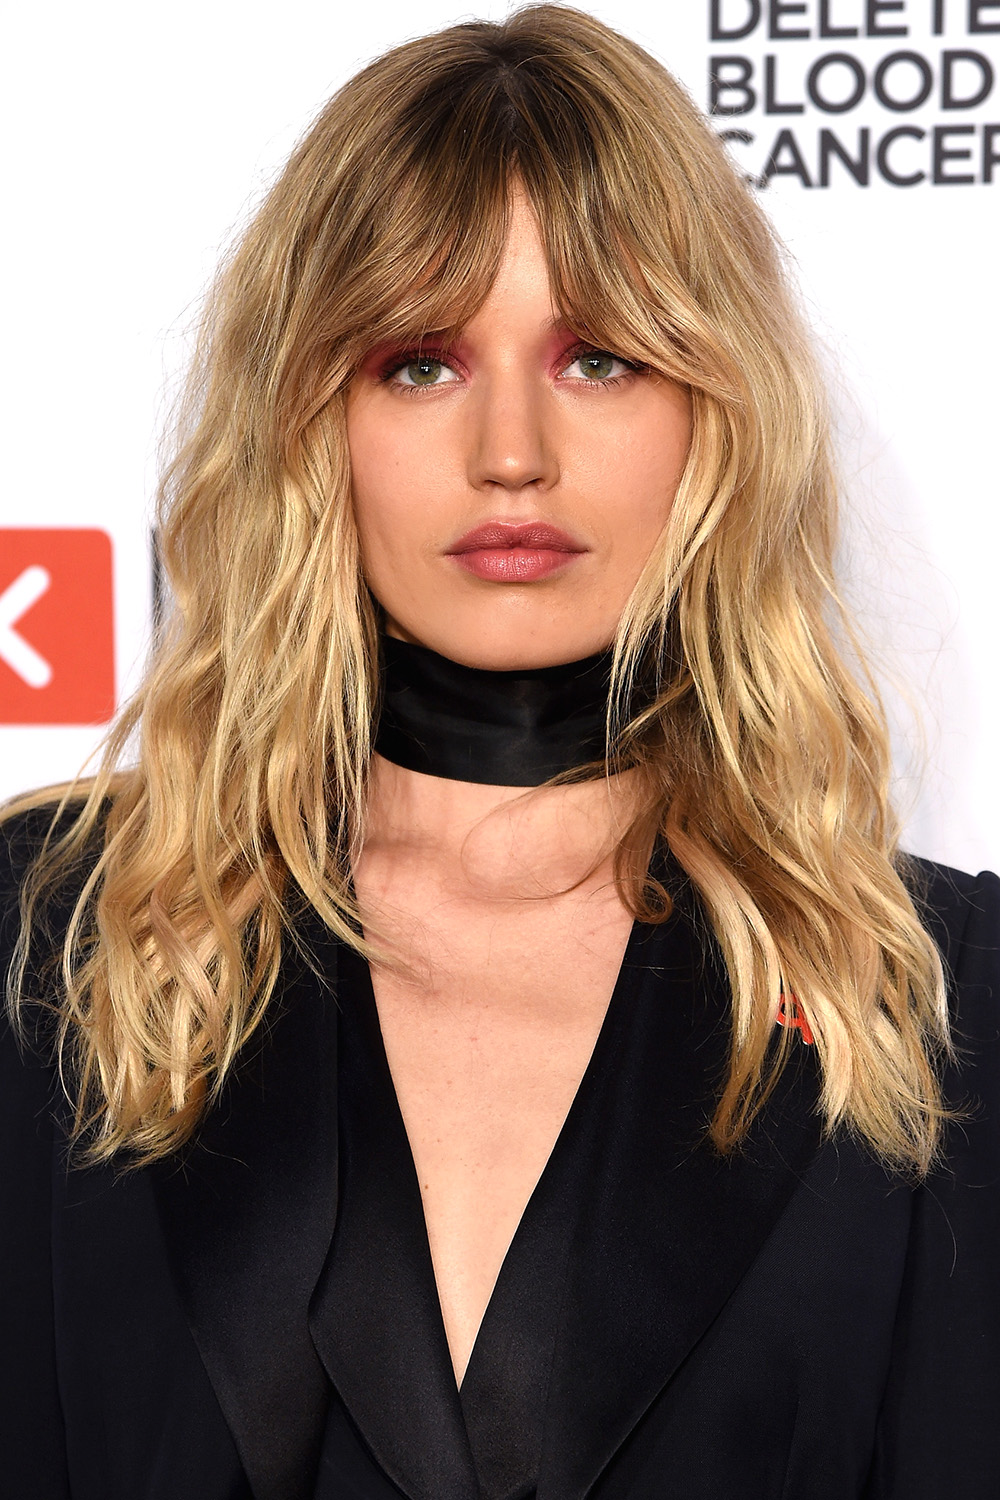 Awesome 33 Best Medium Hairstyles Celebrities With Shoulder Length Haircuts Short Hairstyles Gunalazisus